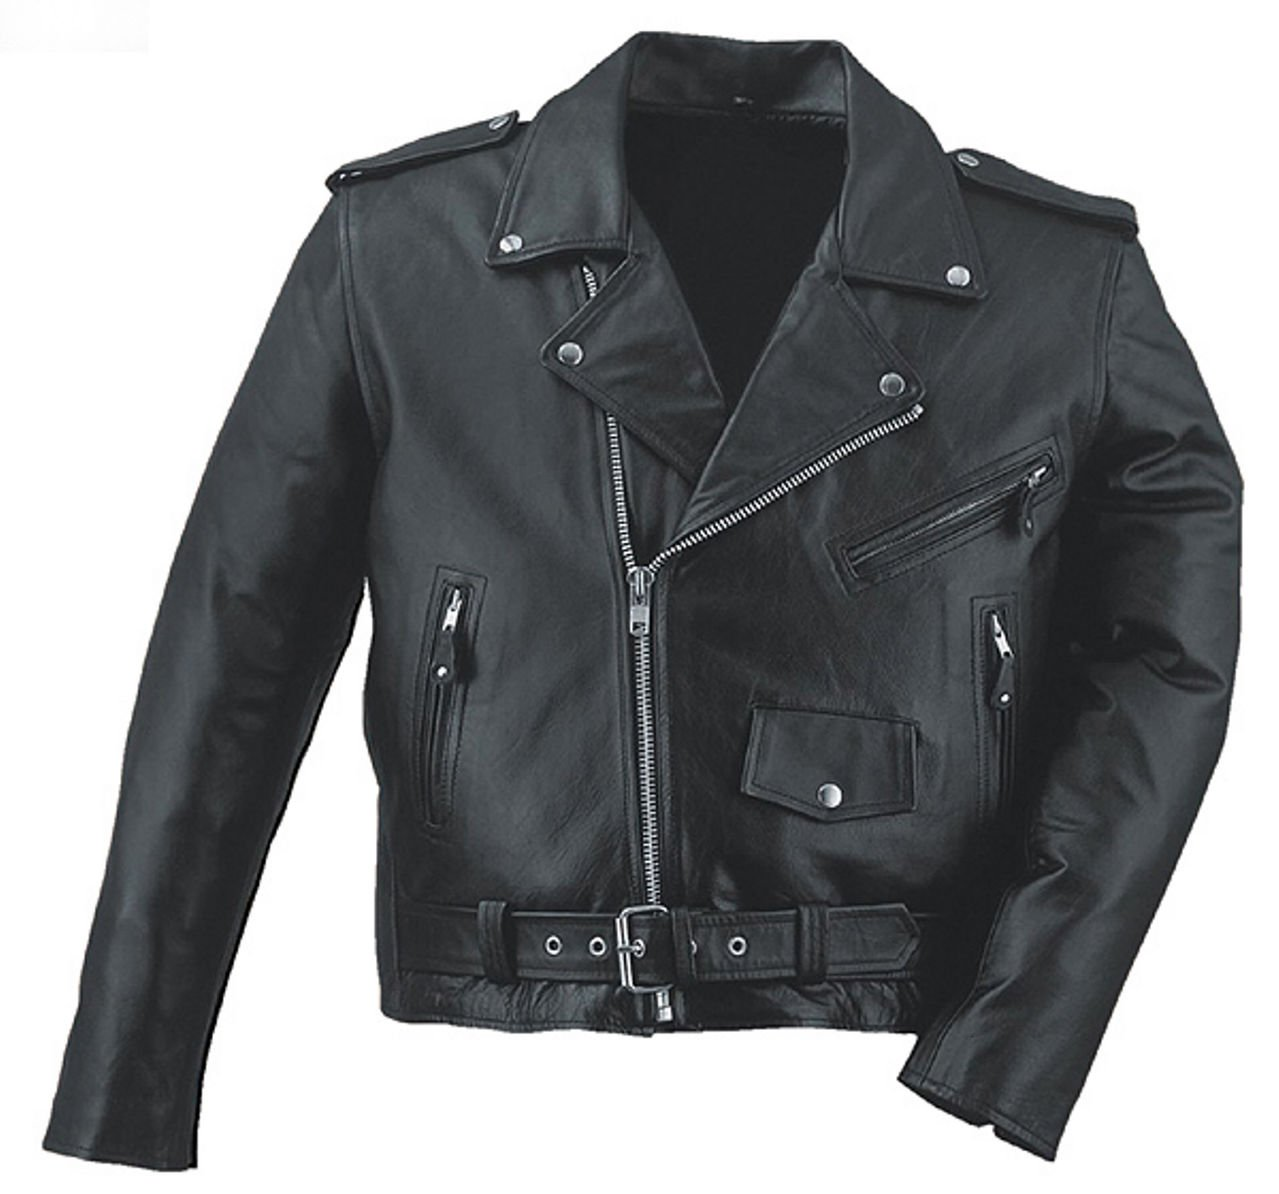 Bikers Zone Leather Jacket Review Leather Motorcycle Jacket